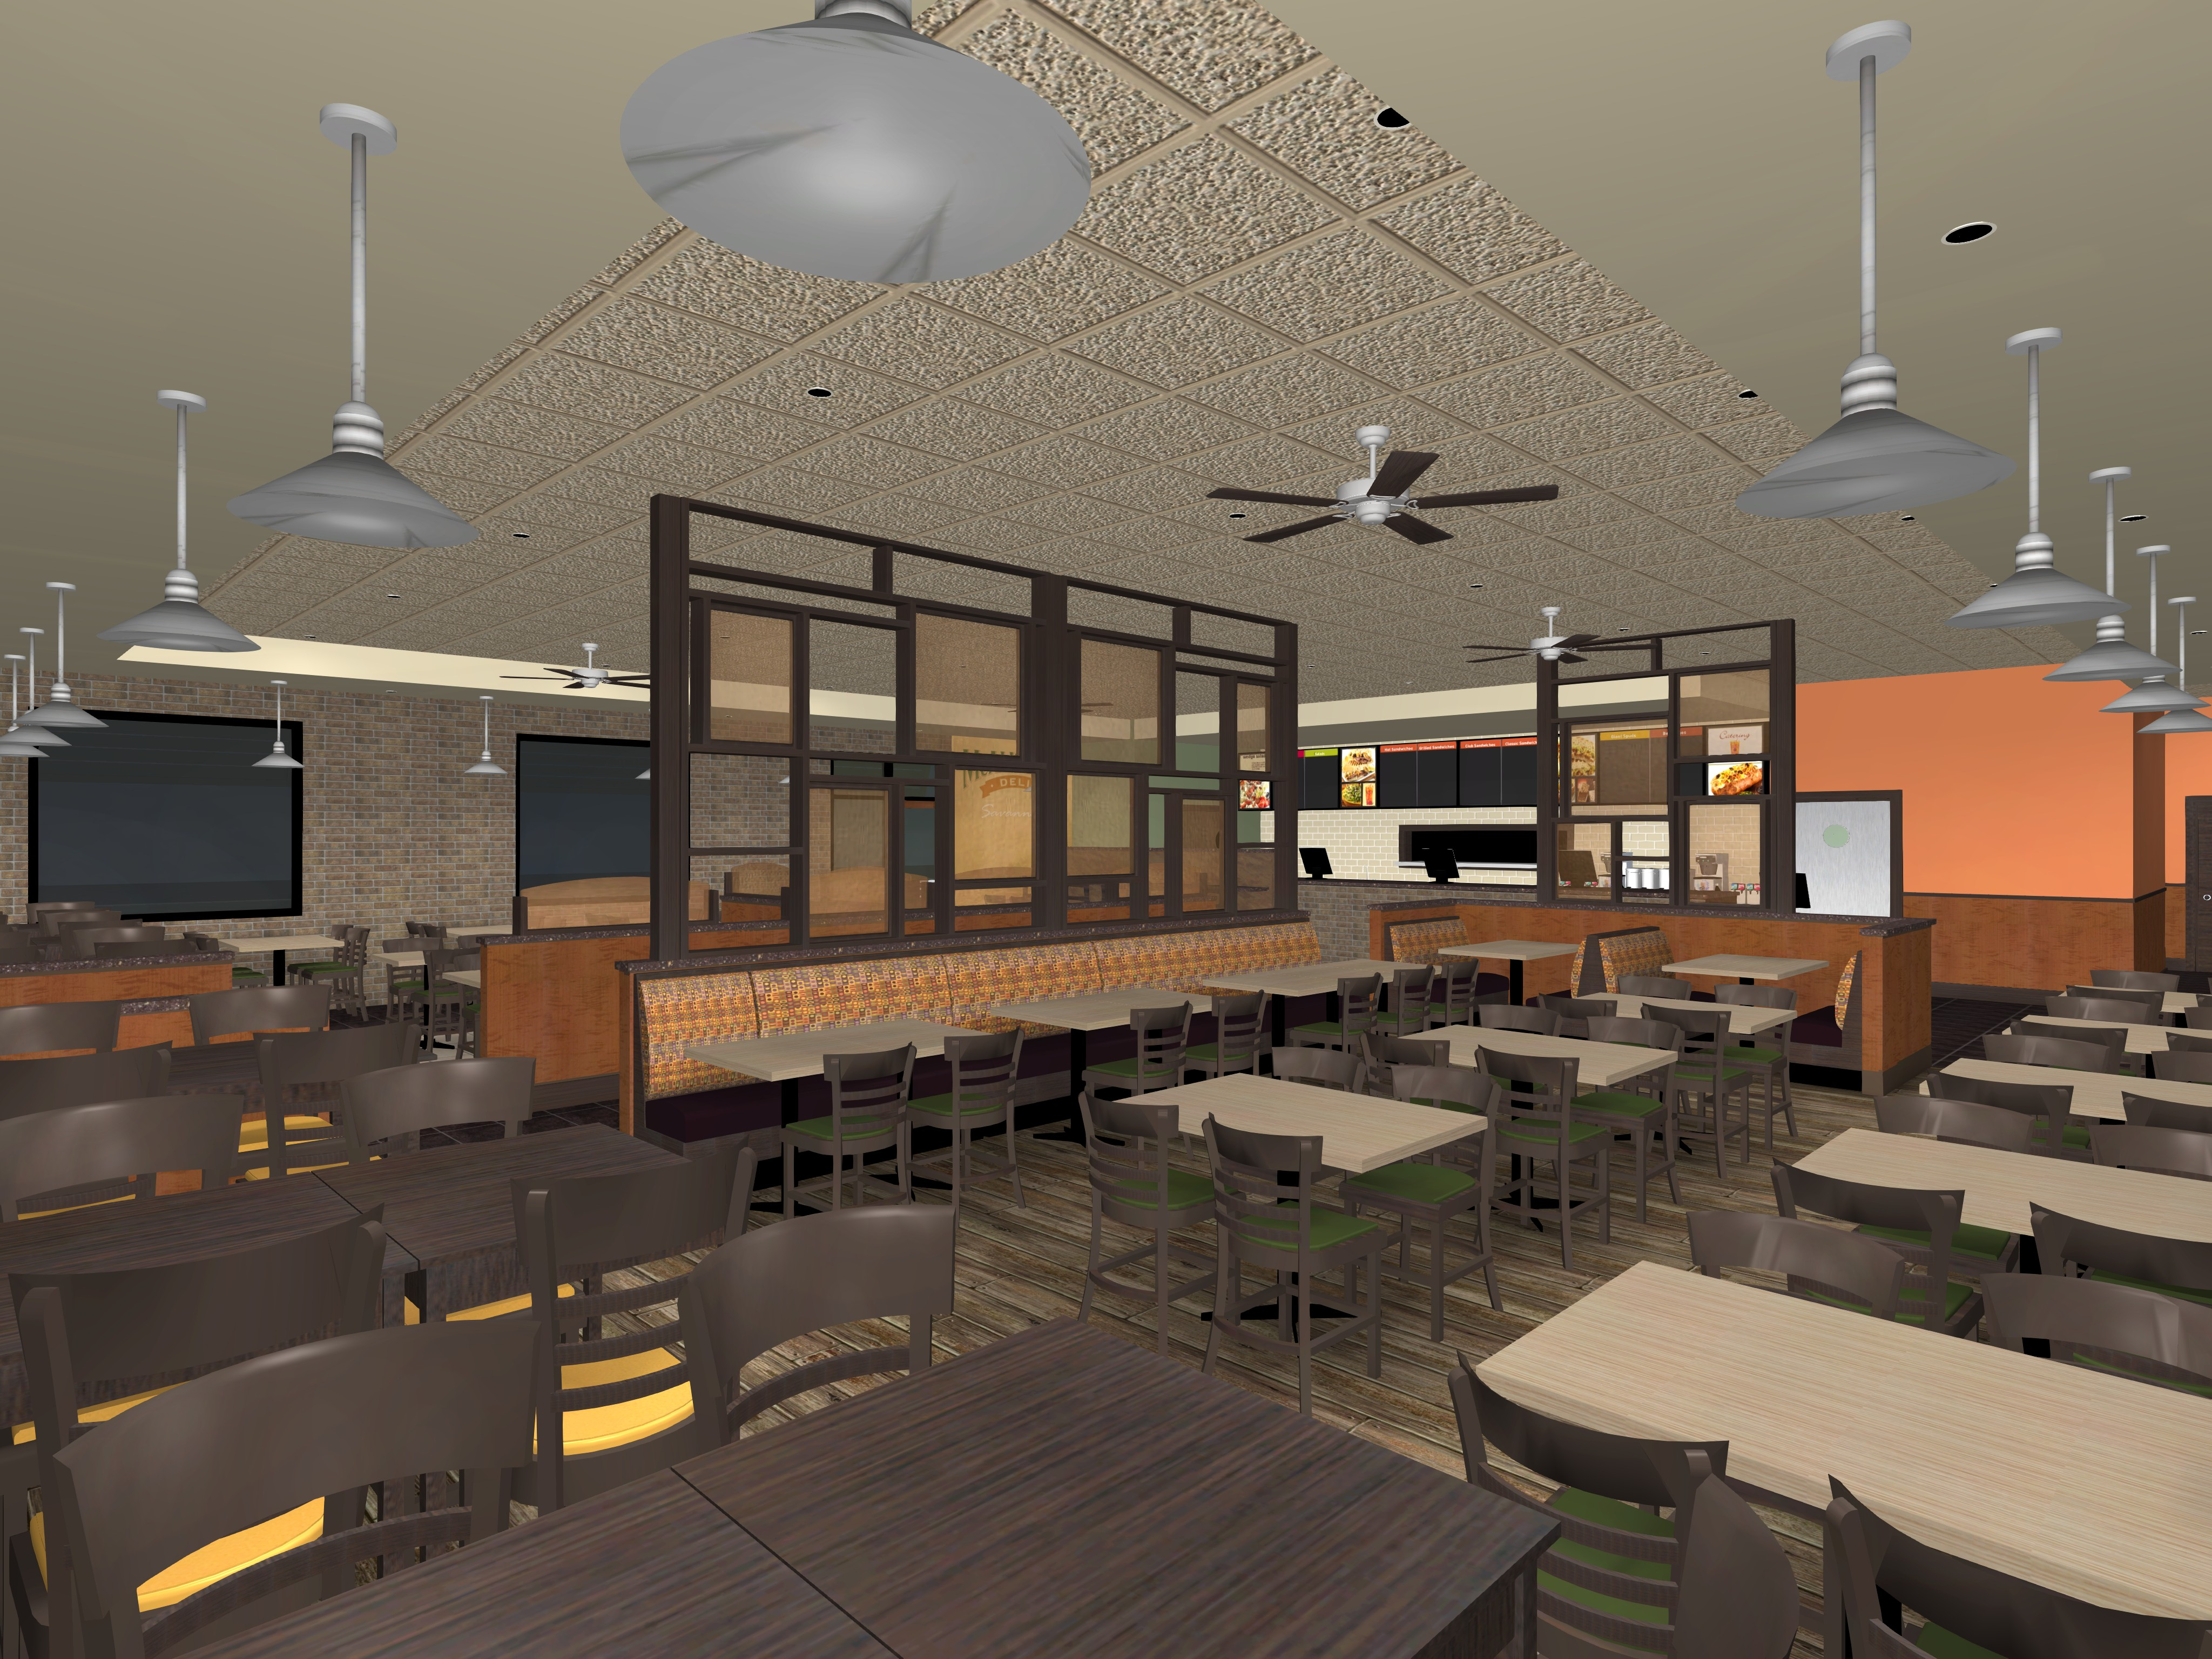 Interior 3D Rendering - Commercial